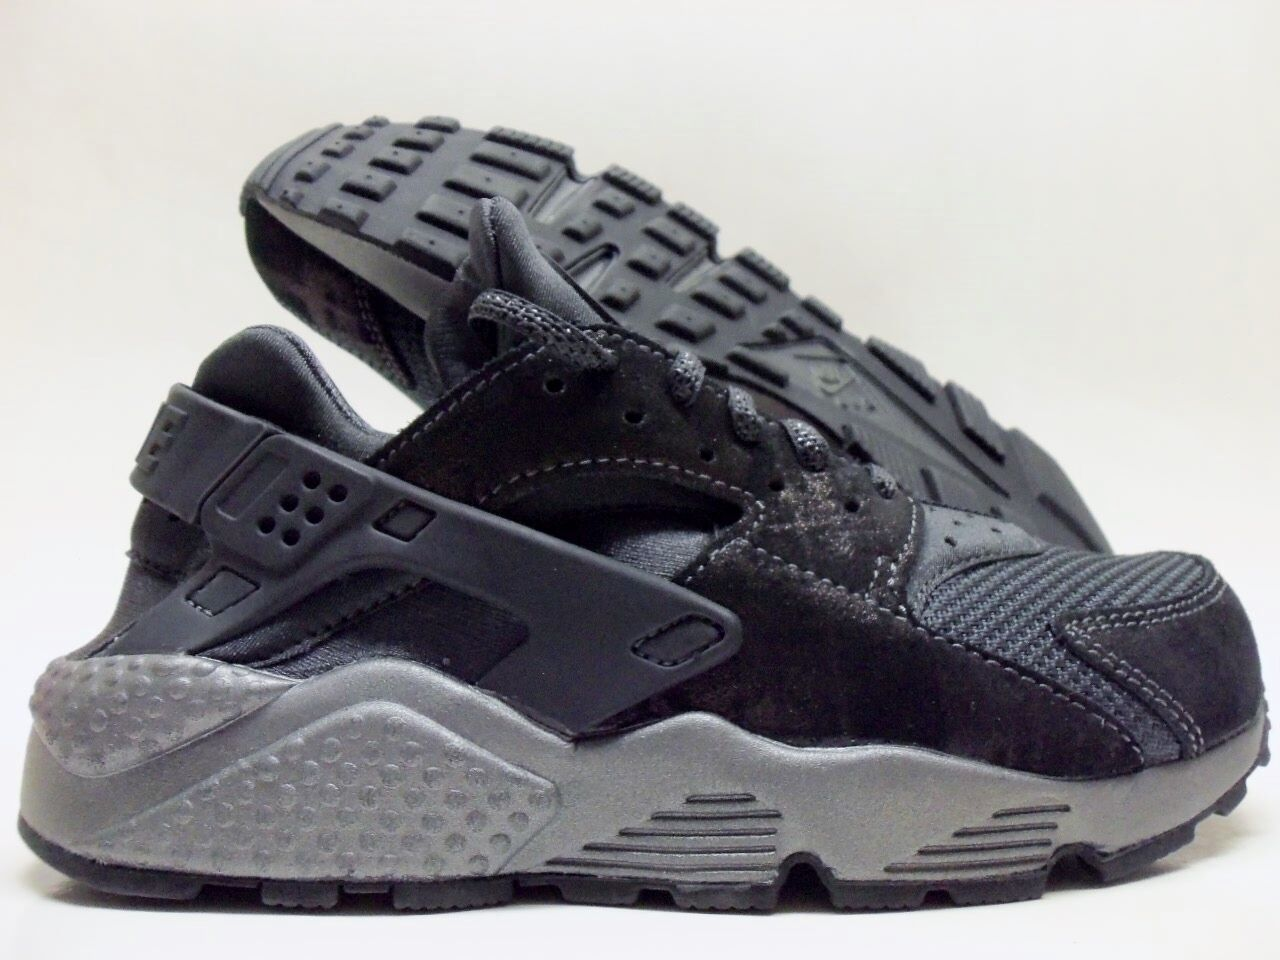 NIKE AIR HUARACHE RUN PRM ANTHRACITE/ANTHRACITE SIZE WOMEN'S 7 [683818-004]